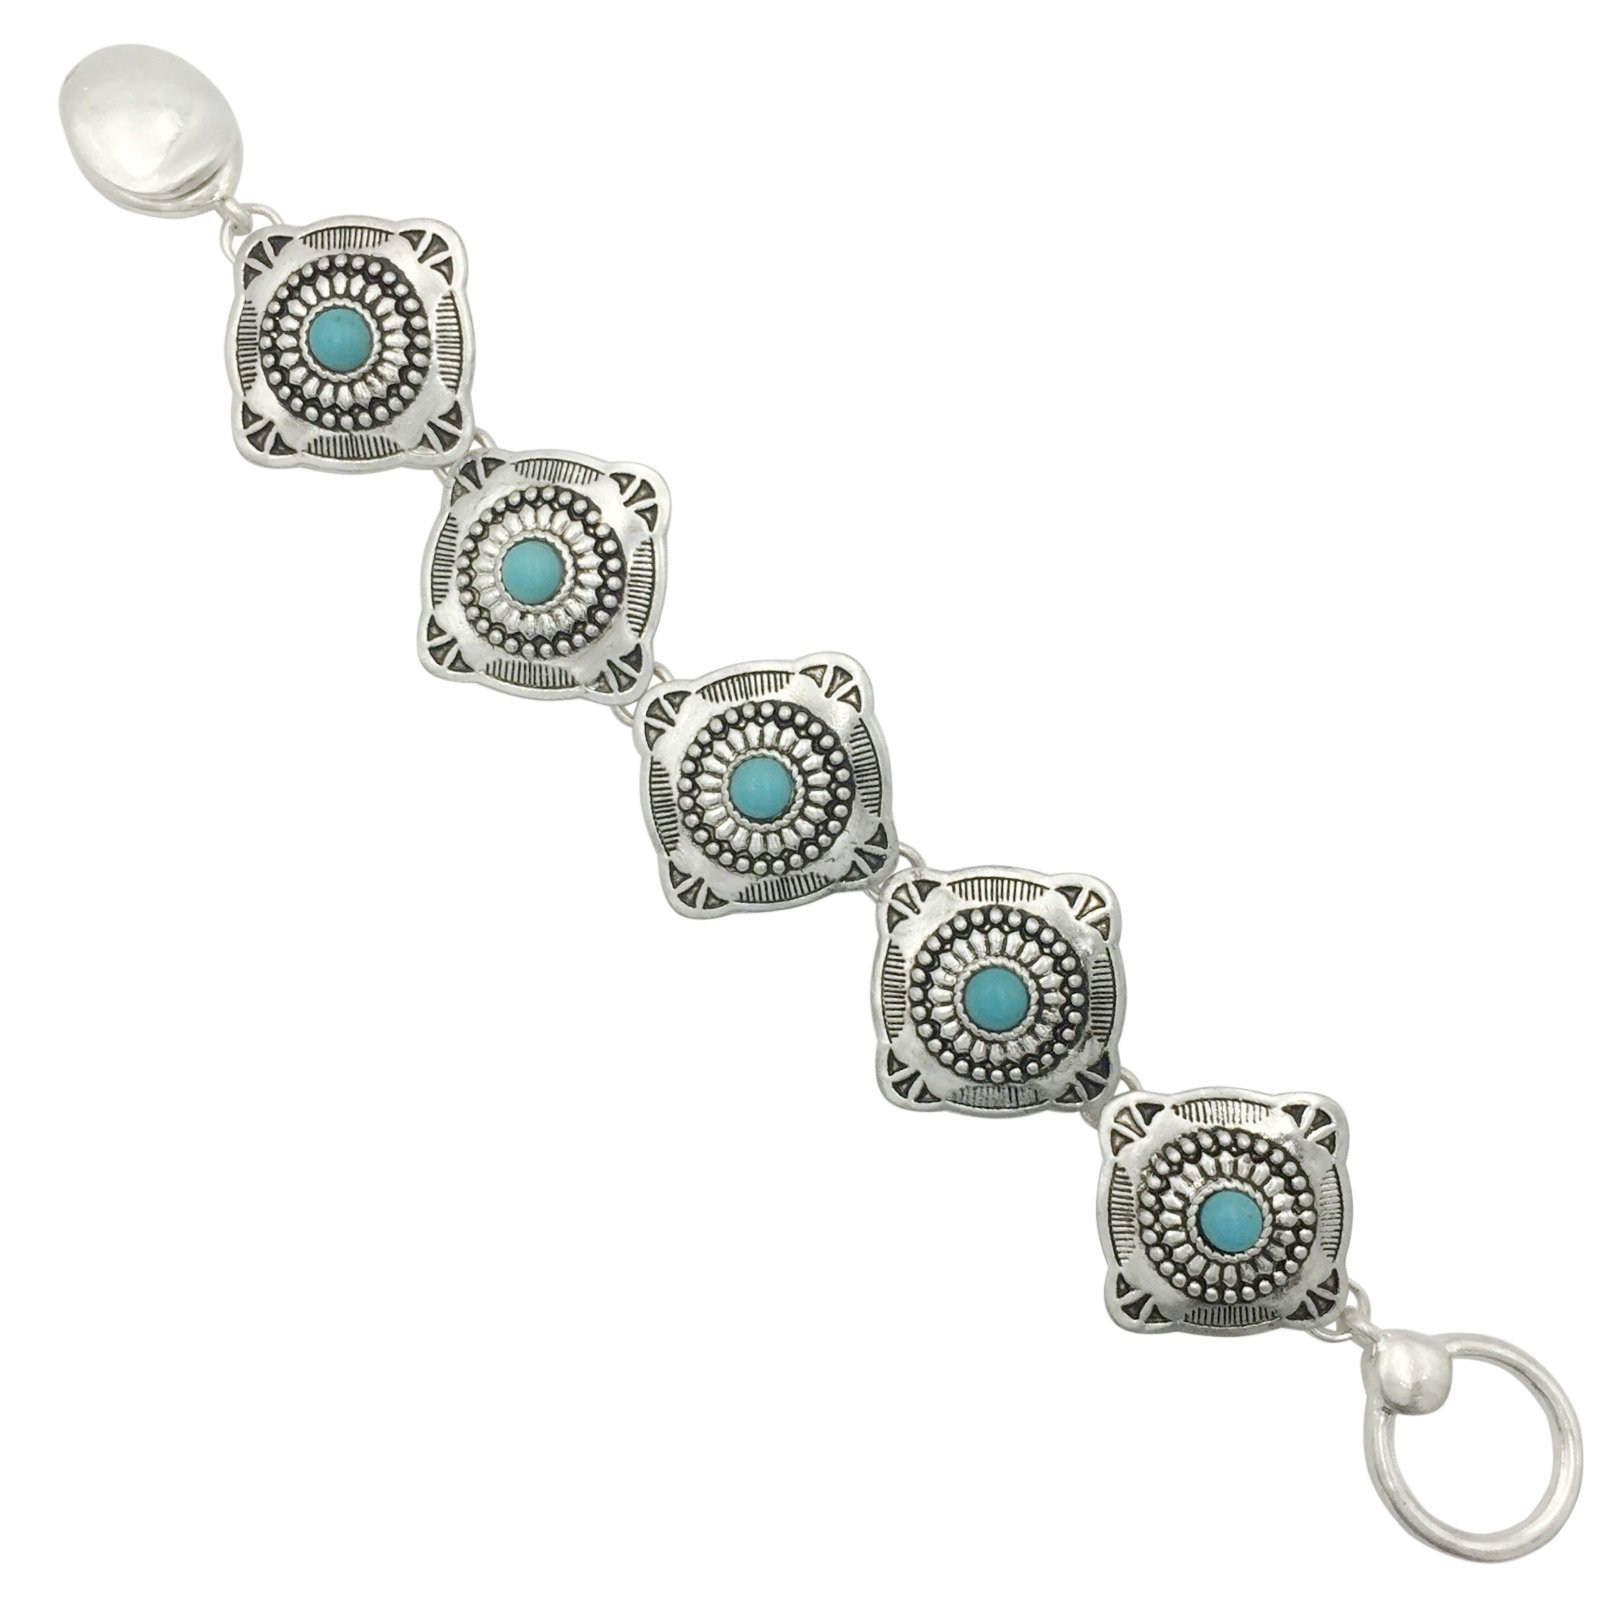 Western Style Silver Tone Clasp Bracelet (Imitation Turquoise Square concho)